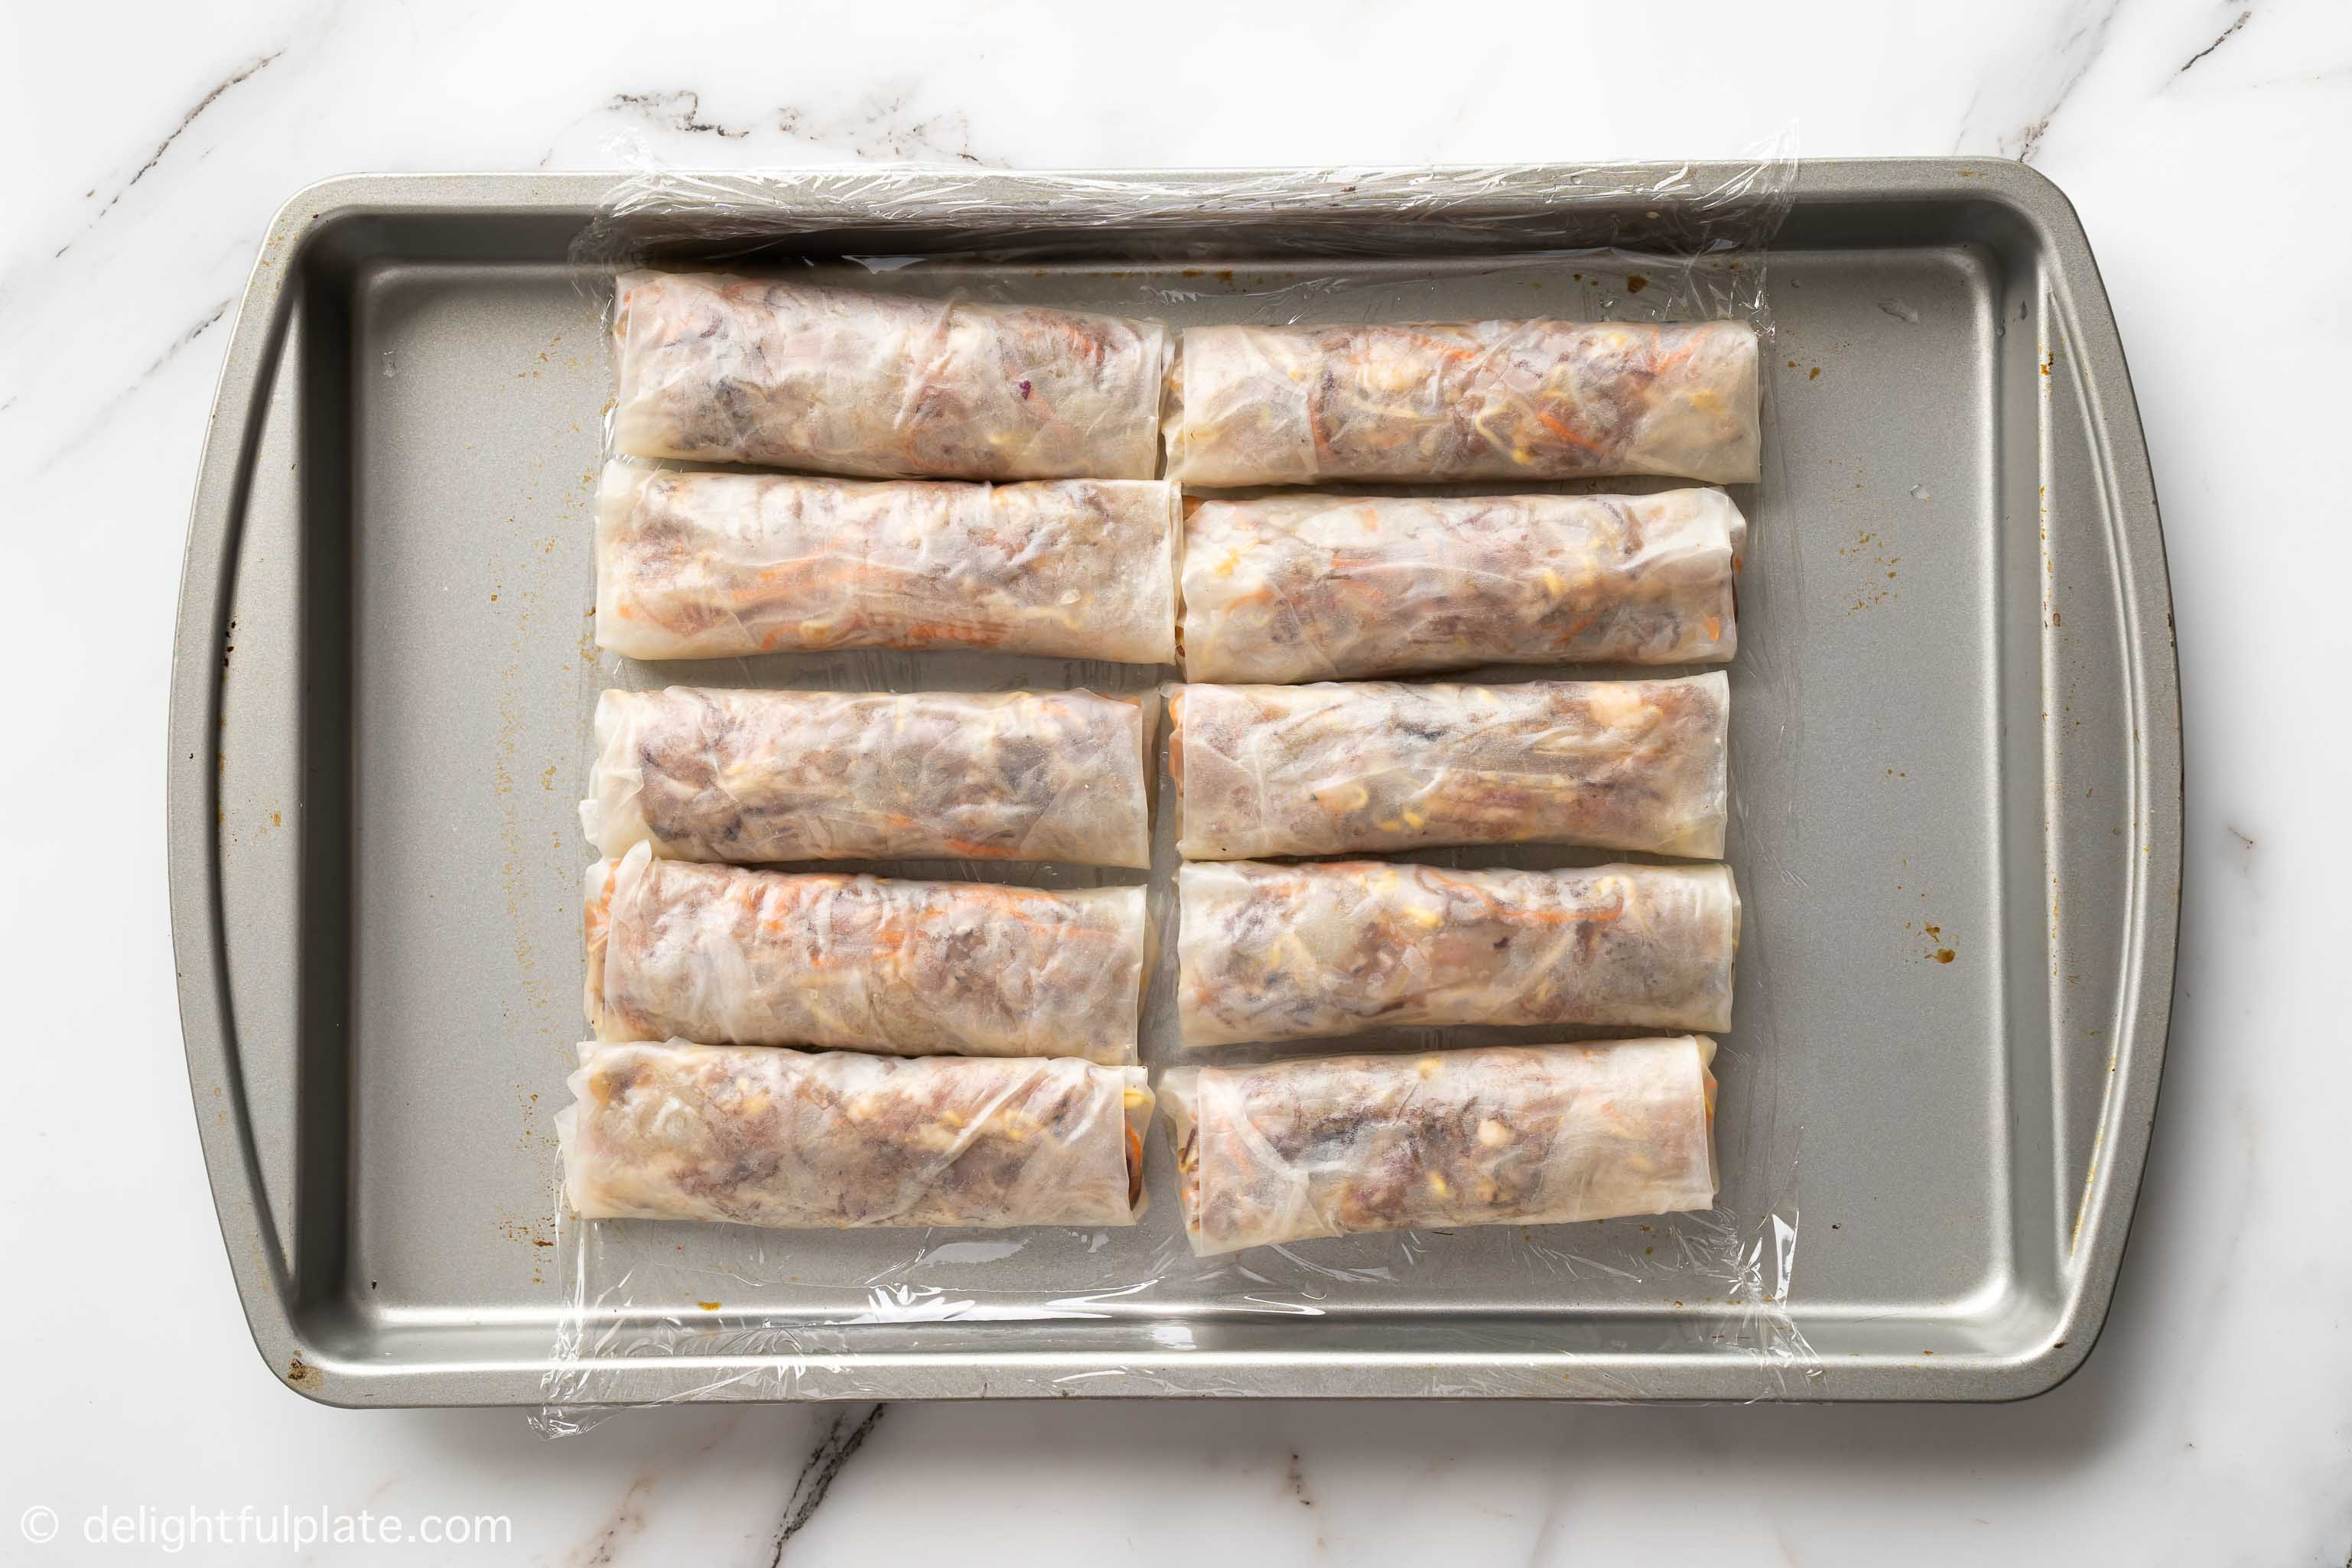 a tray of spring rolls that haven't been fried